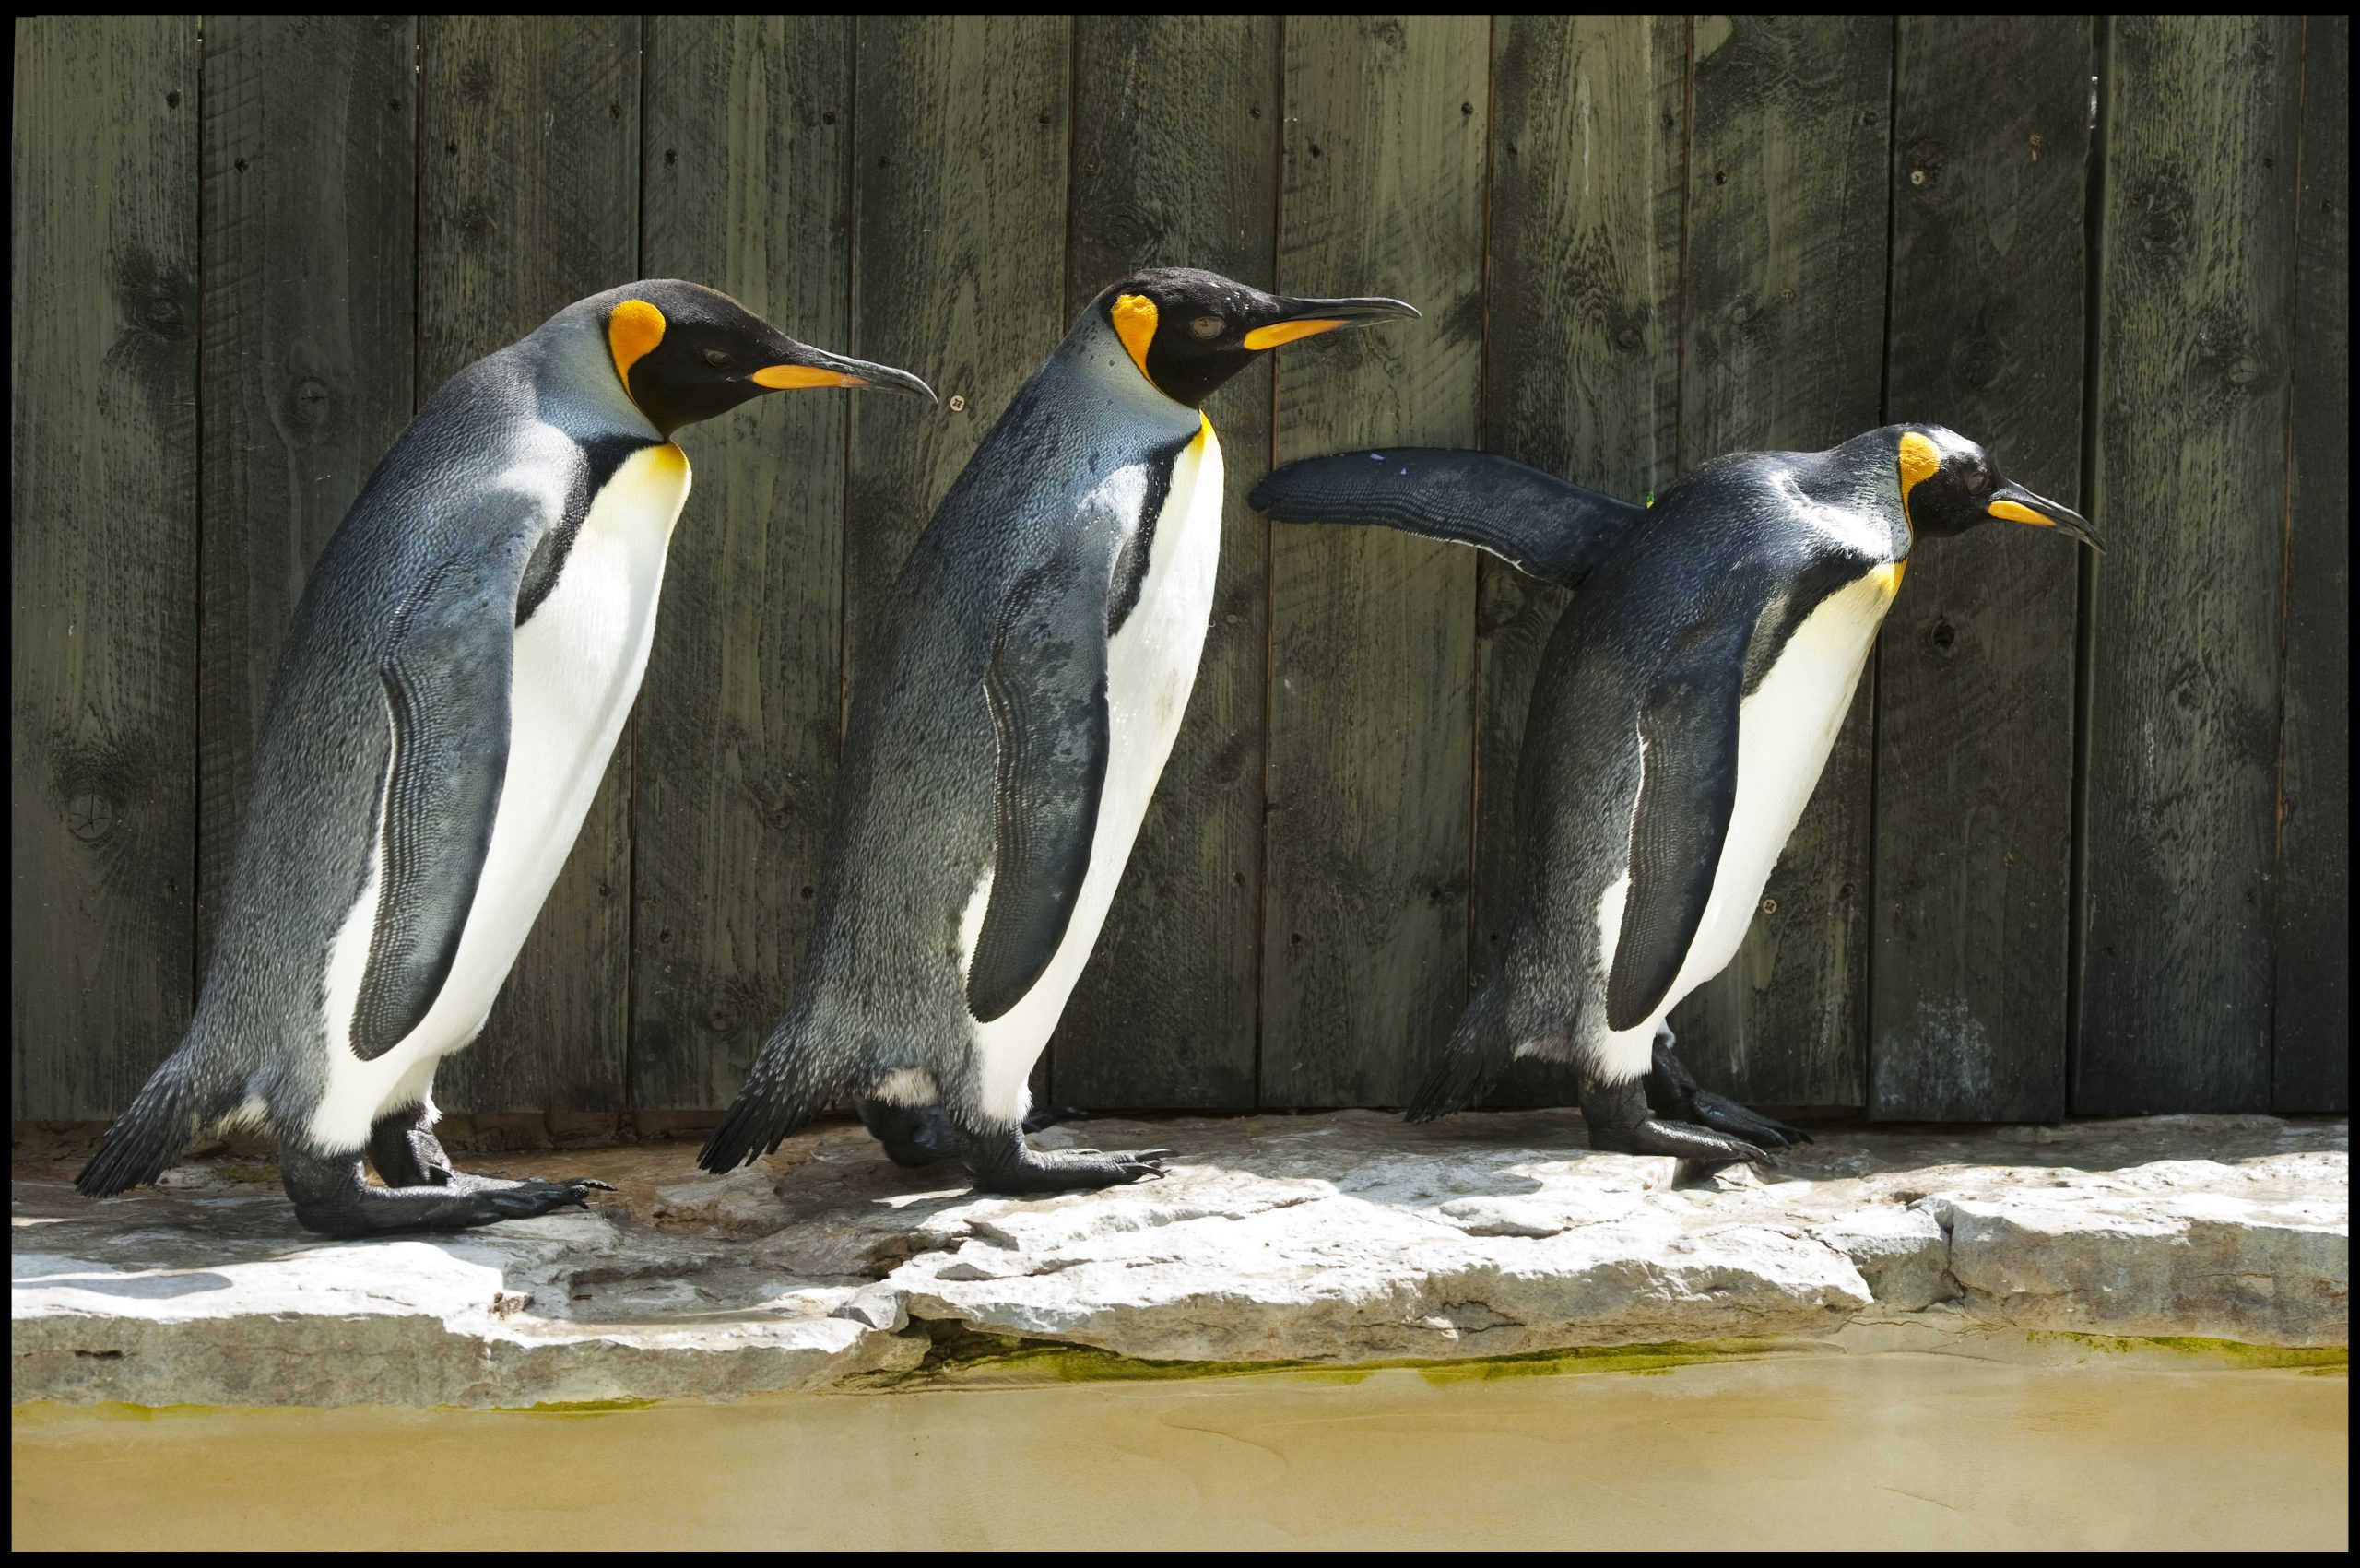 Missy leading the Kings 1 scaled - Is British King Penguin World's Oldest?